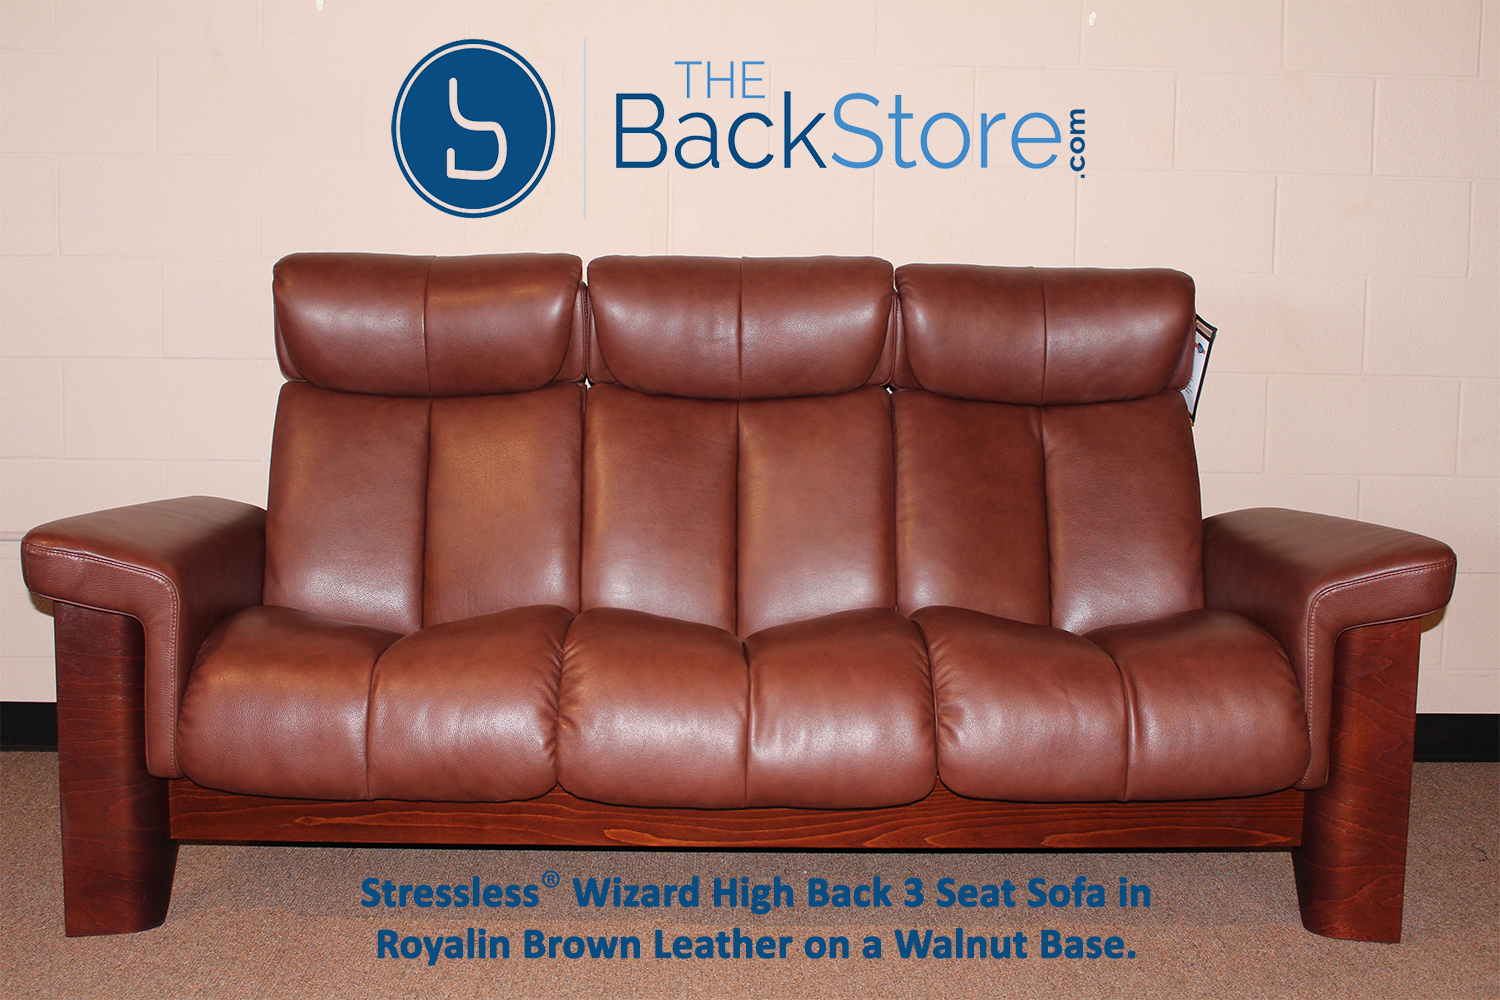 Stressless Wizard 3 Seat High Back Sofa Royalin Brown Color